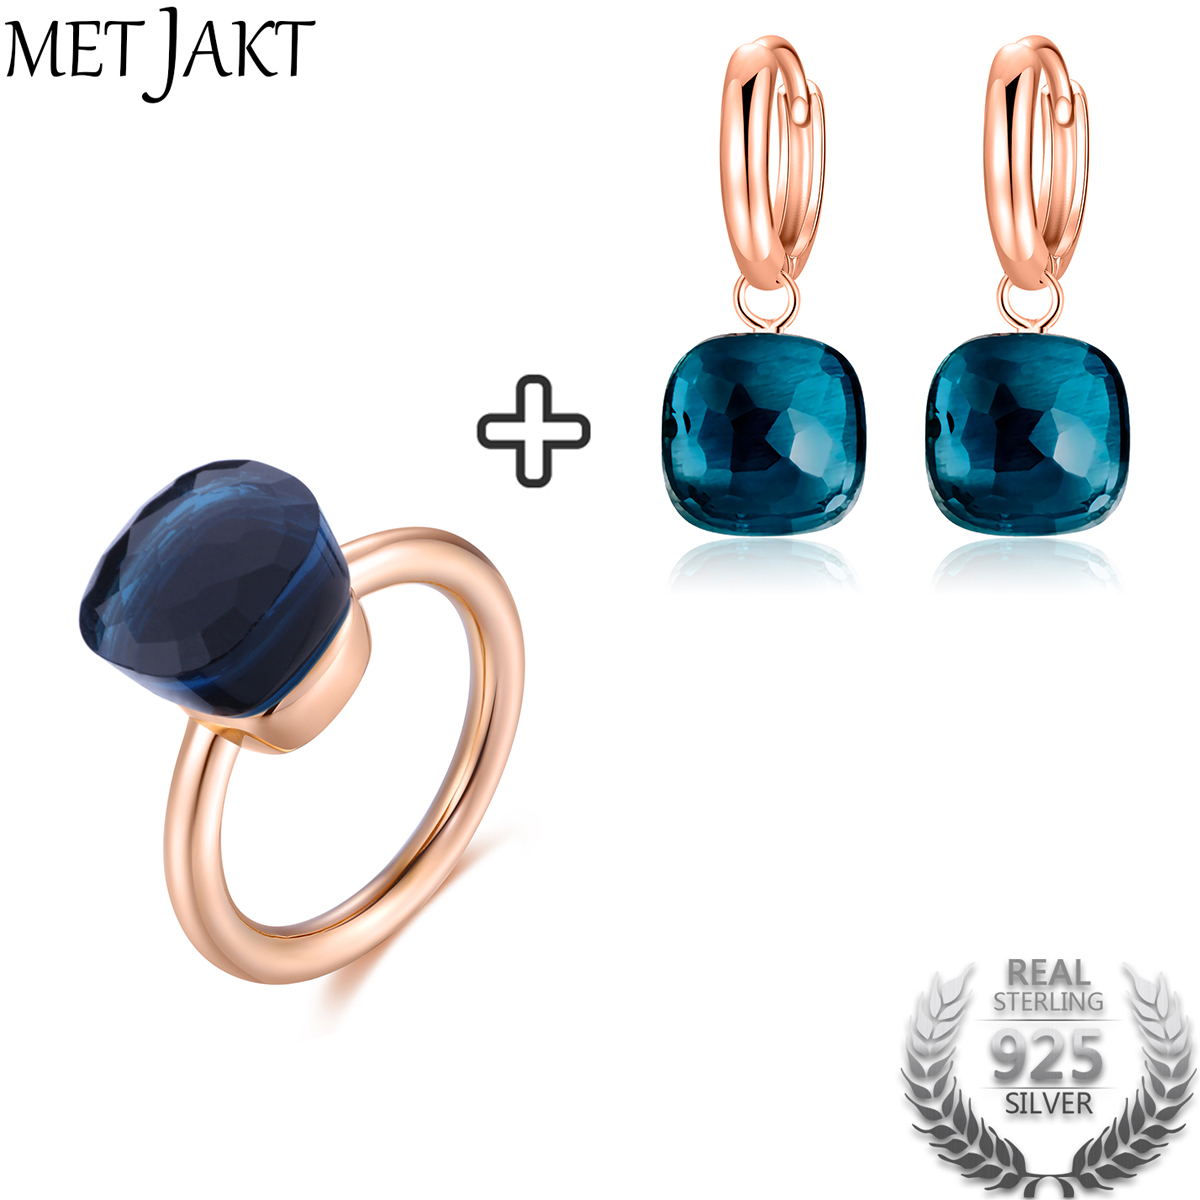 MetJakt Classic Blue Topaz Earring Ring Solid 925 Sterling Silver with Rose Gold Color Jewelry Sets